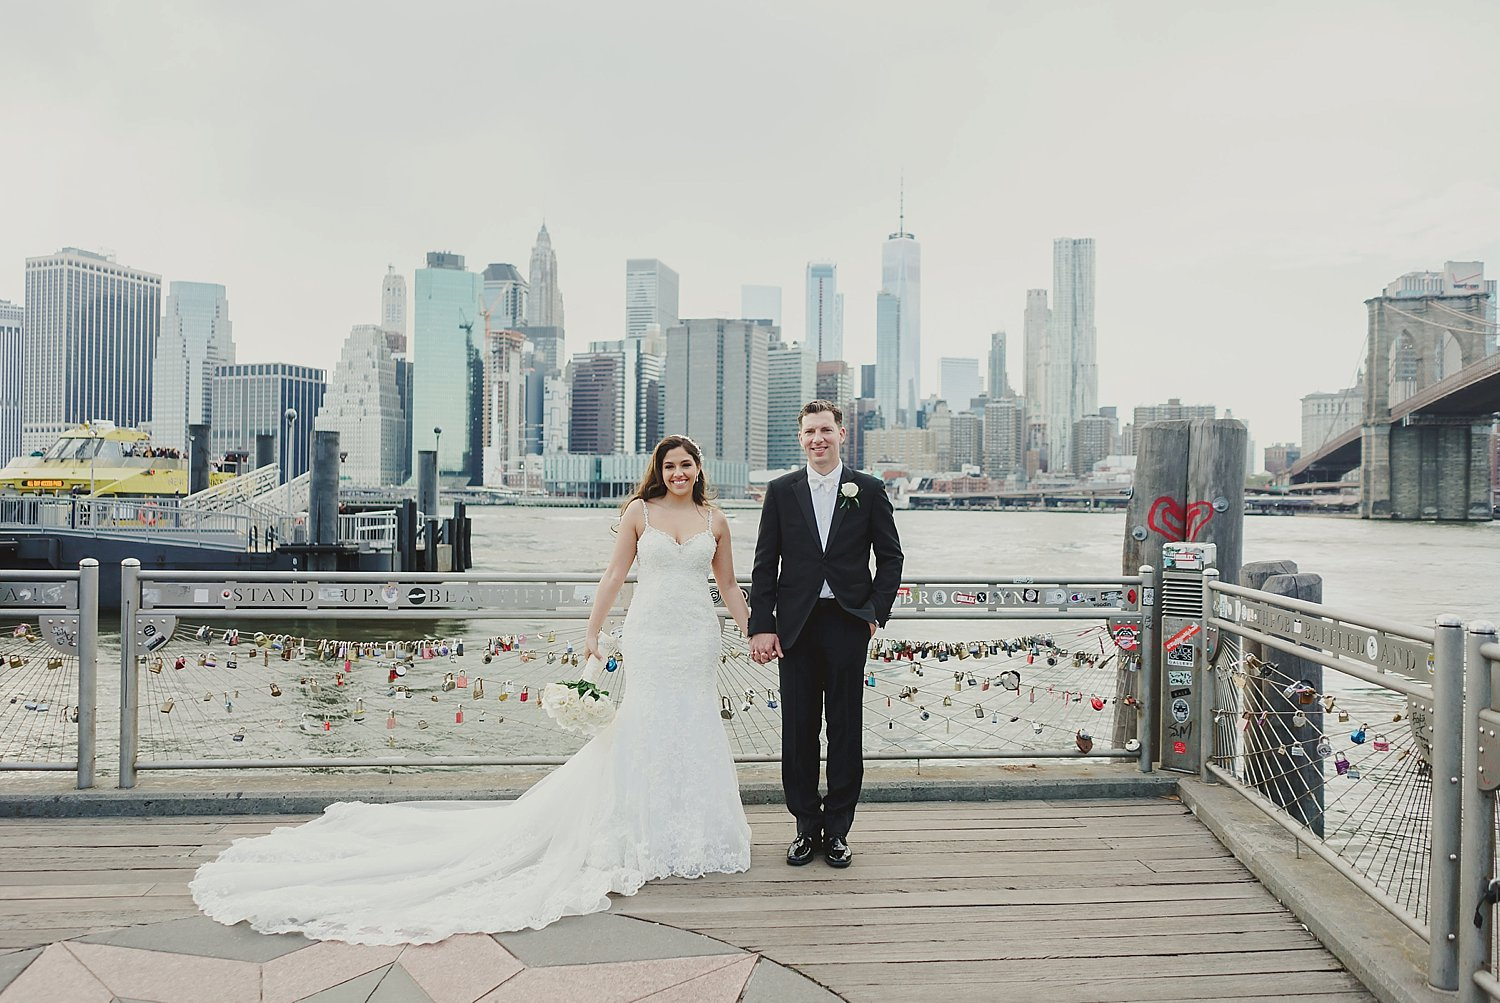 nyc-wedding-photography-nj-tri-state-cinematography-intothestory-by-moo-jae_0186.jpg